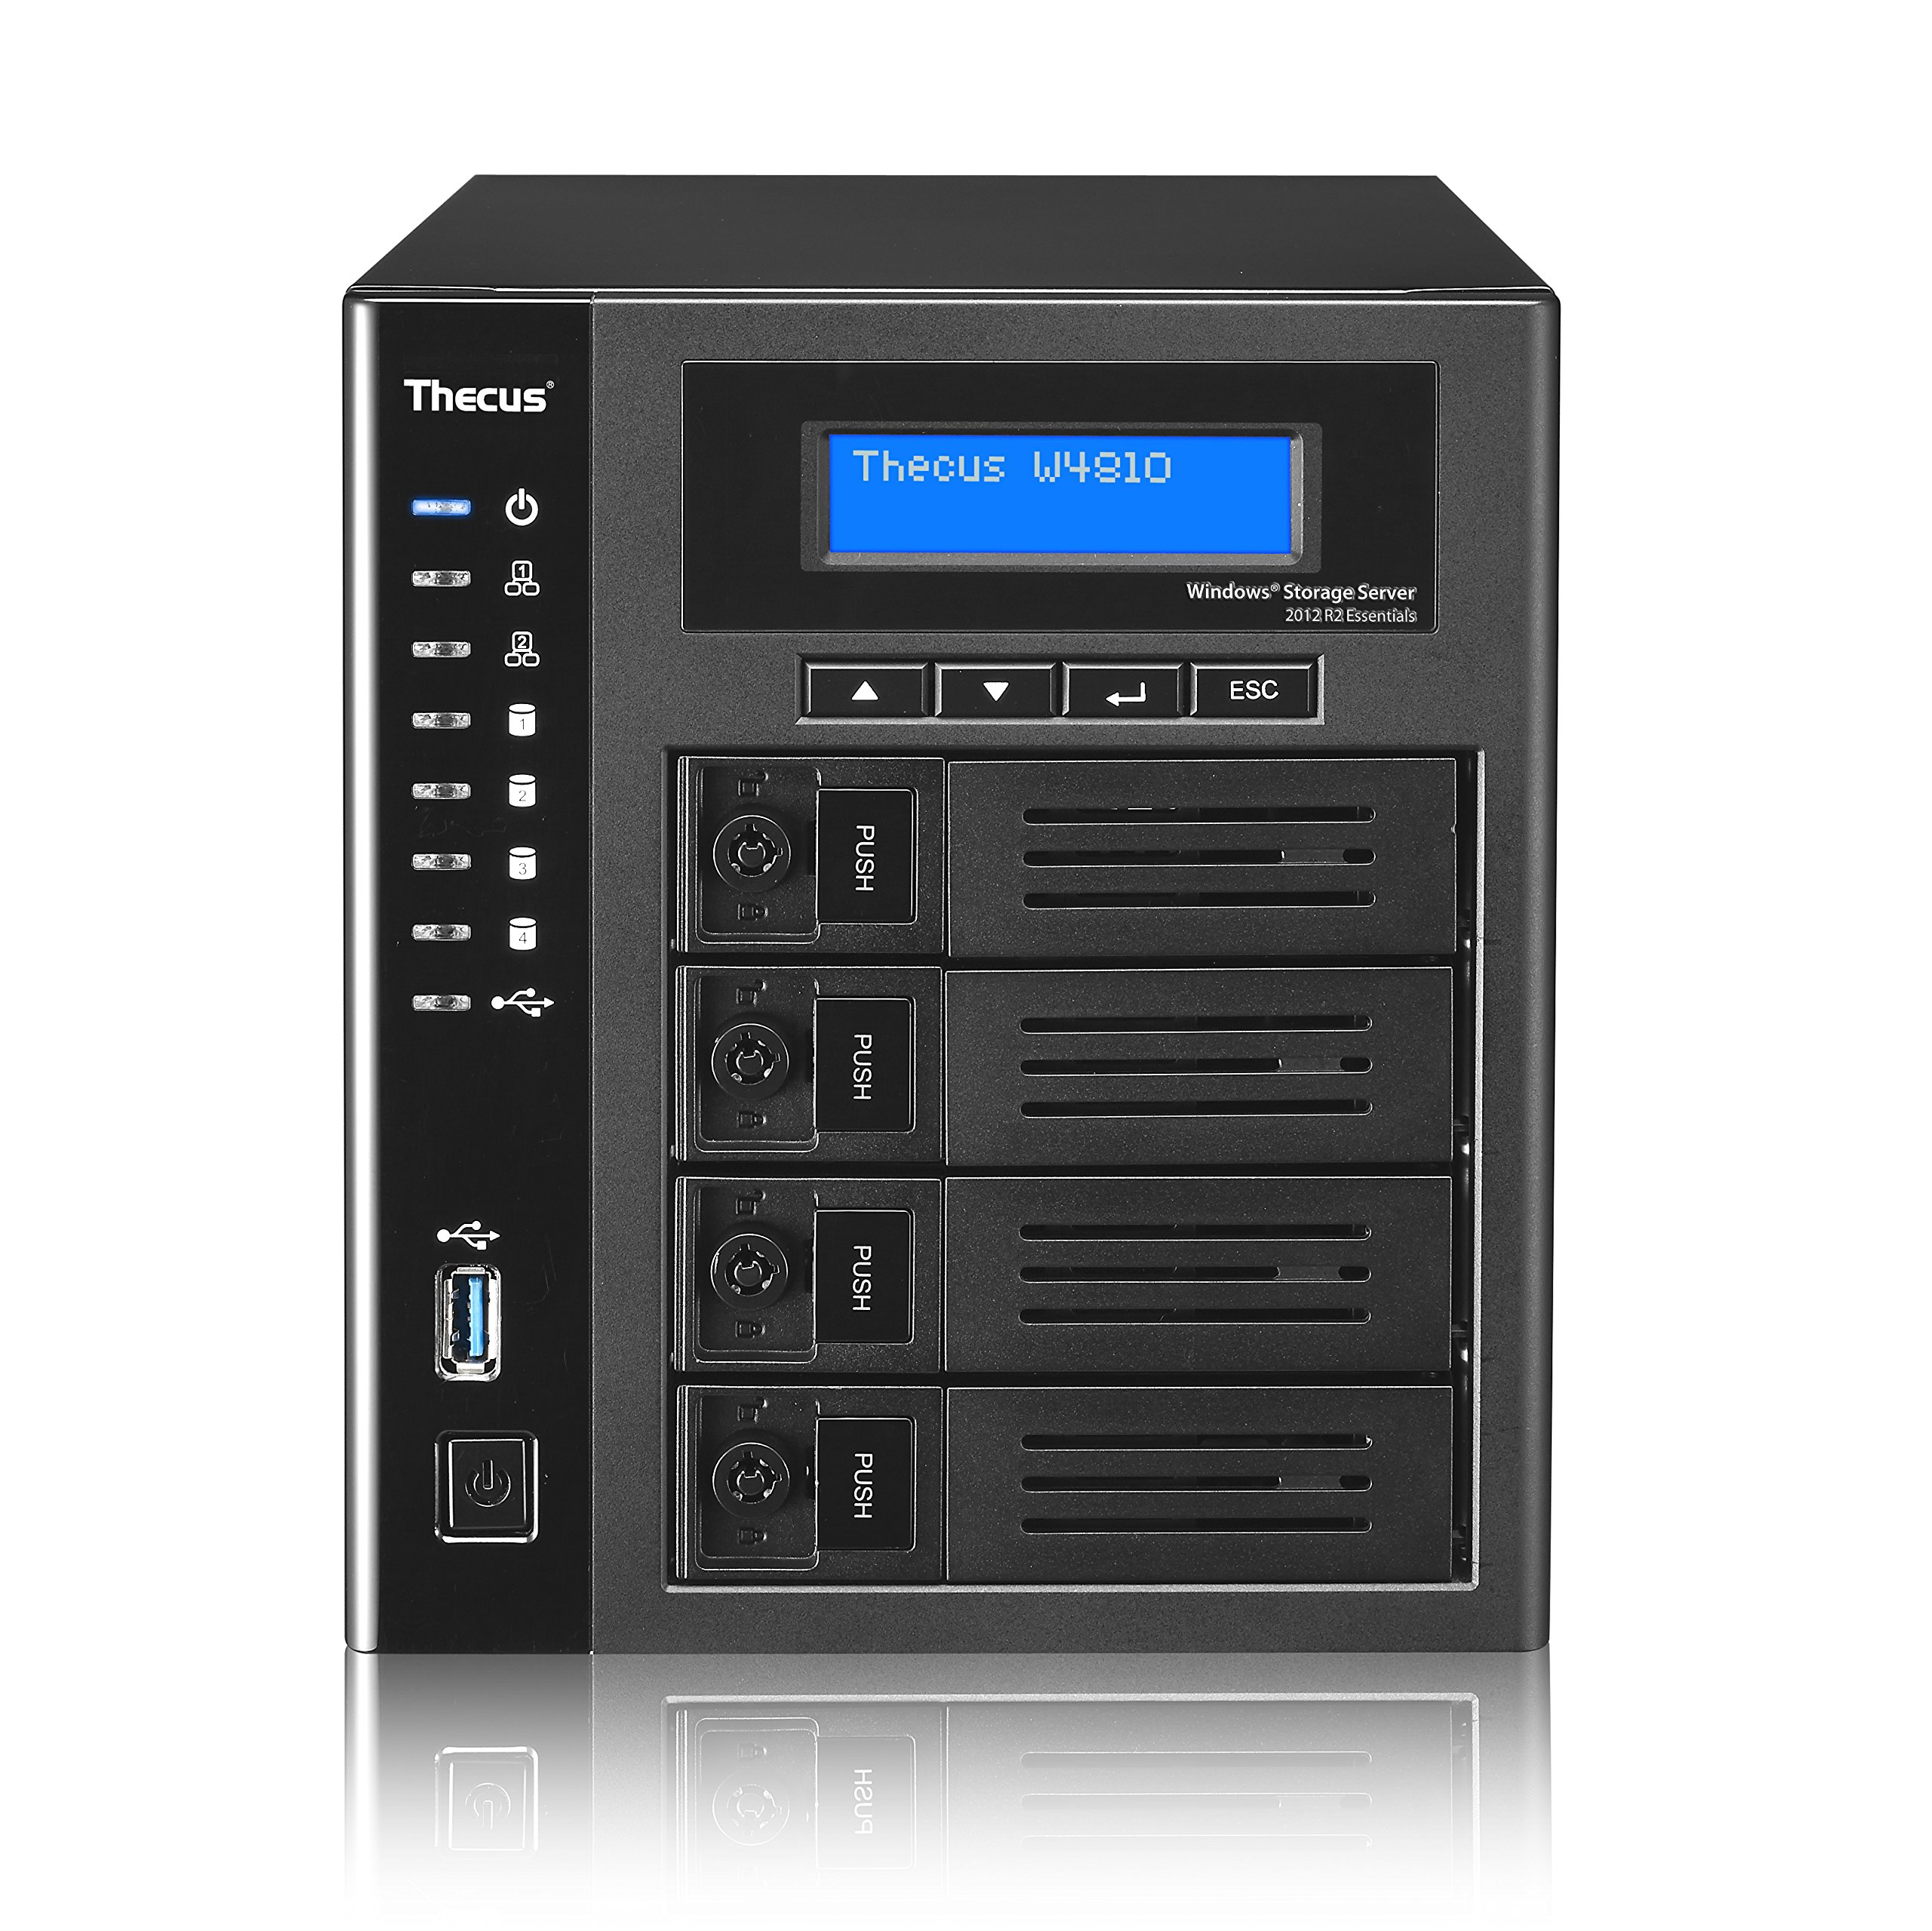 Thecus W4810 4-Bay WSS NAS with Intel Celeron N3160 1.6 GHz Qual Core, 4GB RAM, Windows License Included - Black